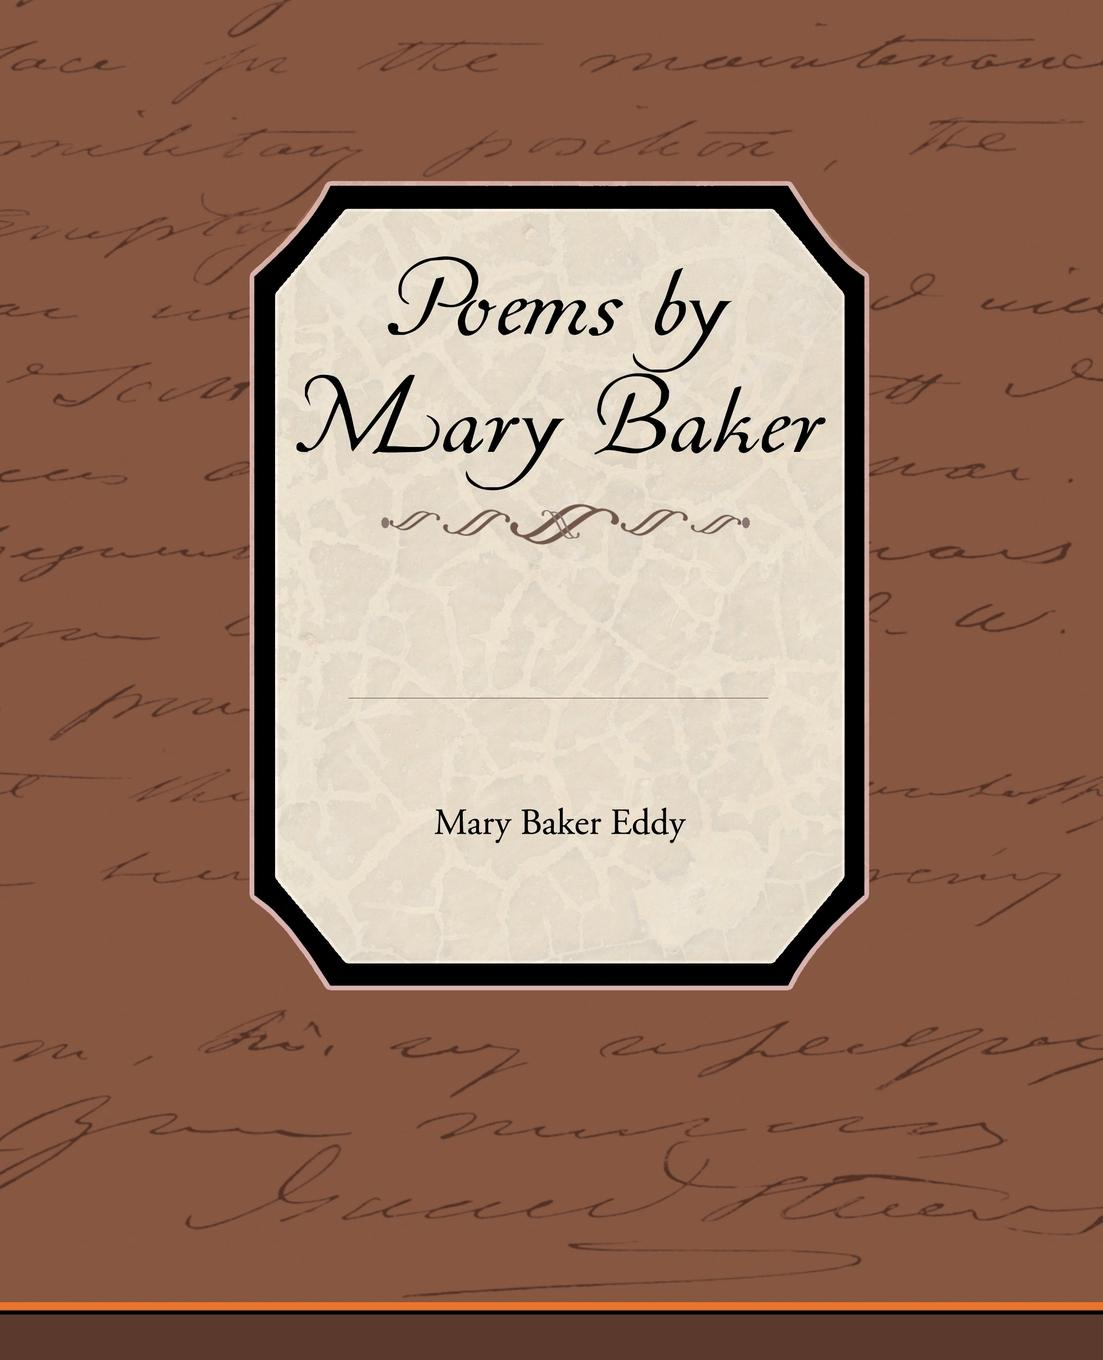 лучшая цена Mary Baker Eddy Poems by Mary Baker Eddy